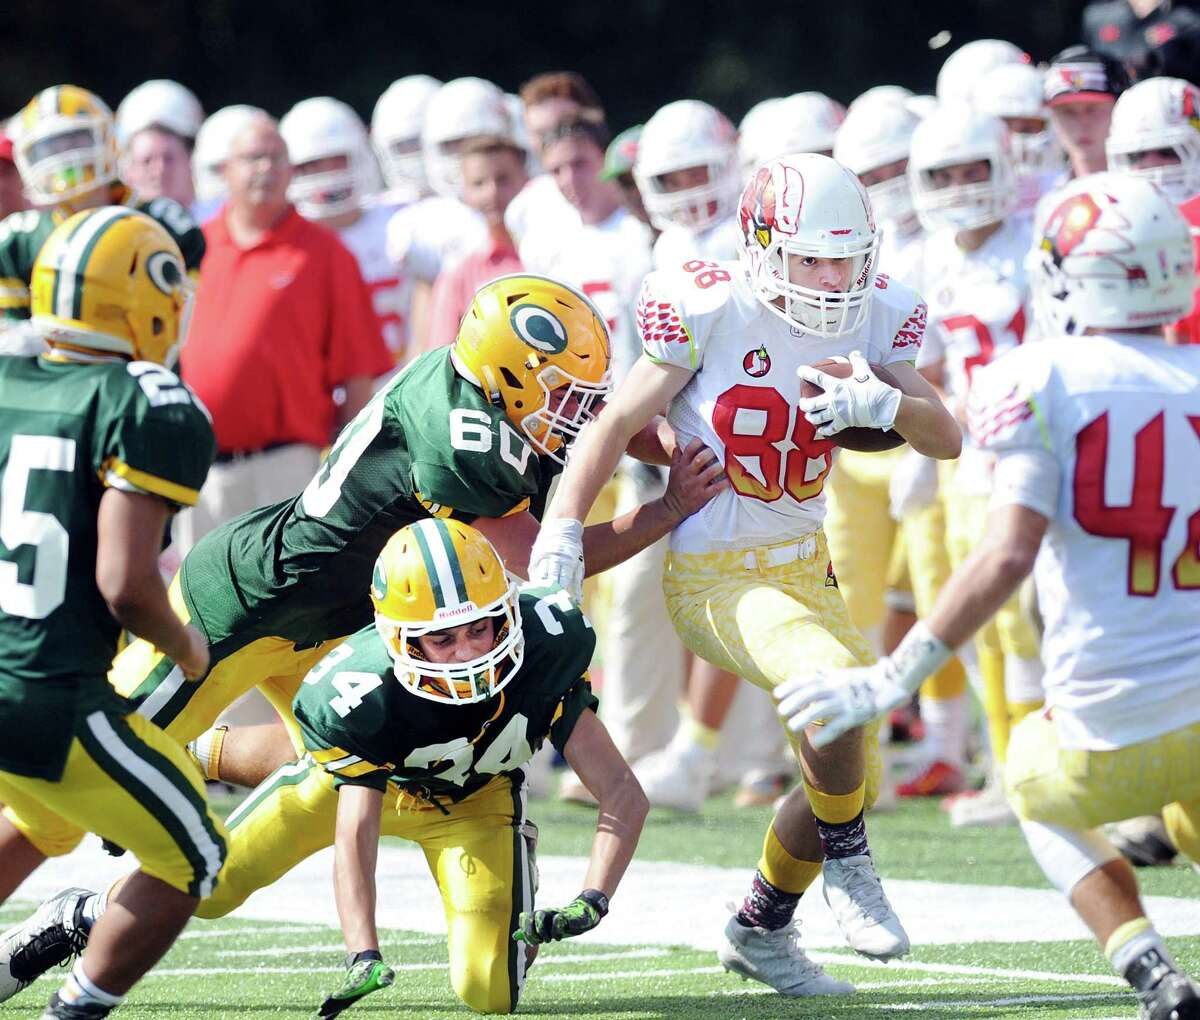 Trinity Catholic High School defender Evan Field (#34), bottom, faces an uncertain sports future as several programs have been cut due to dwindling enrollment, including football.